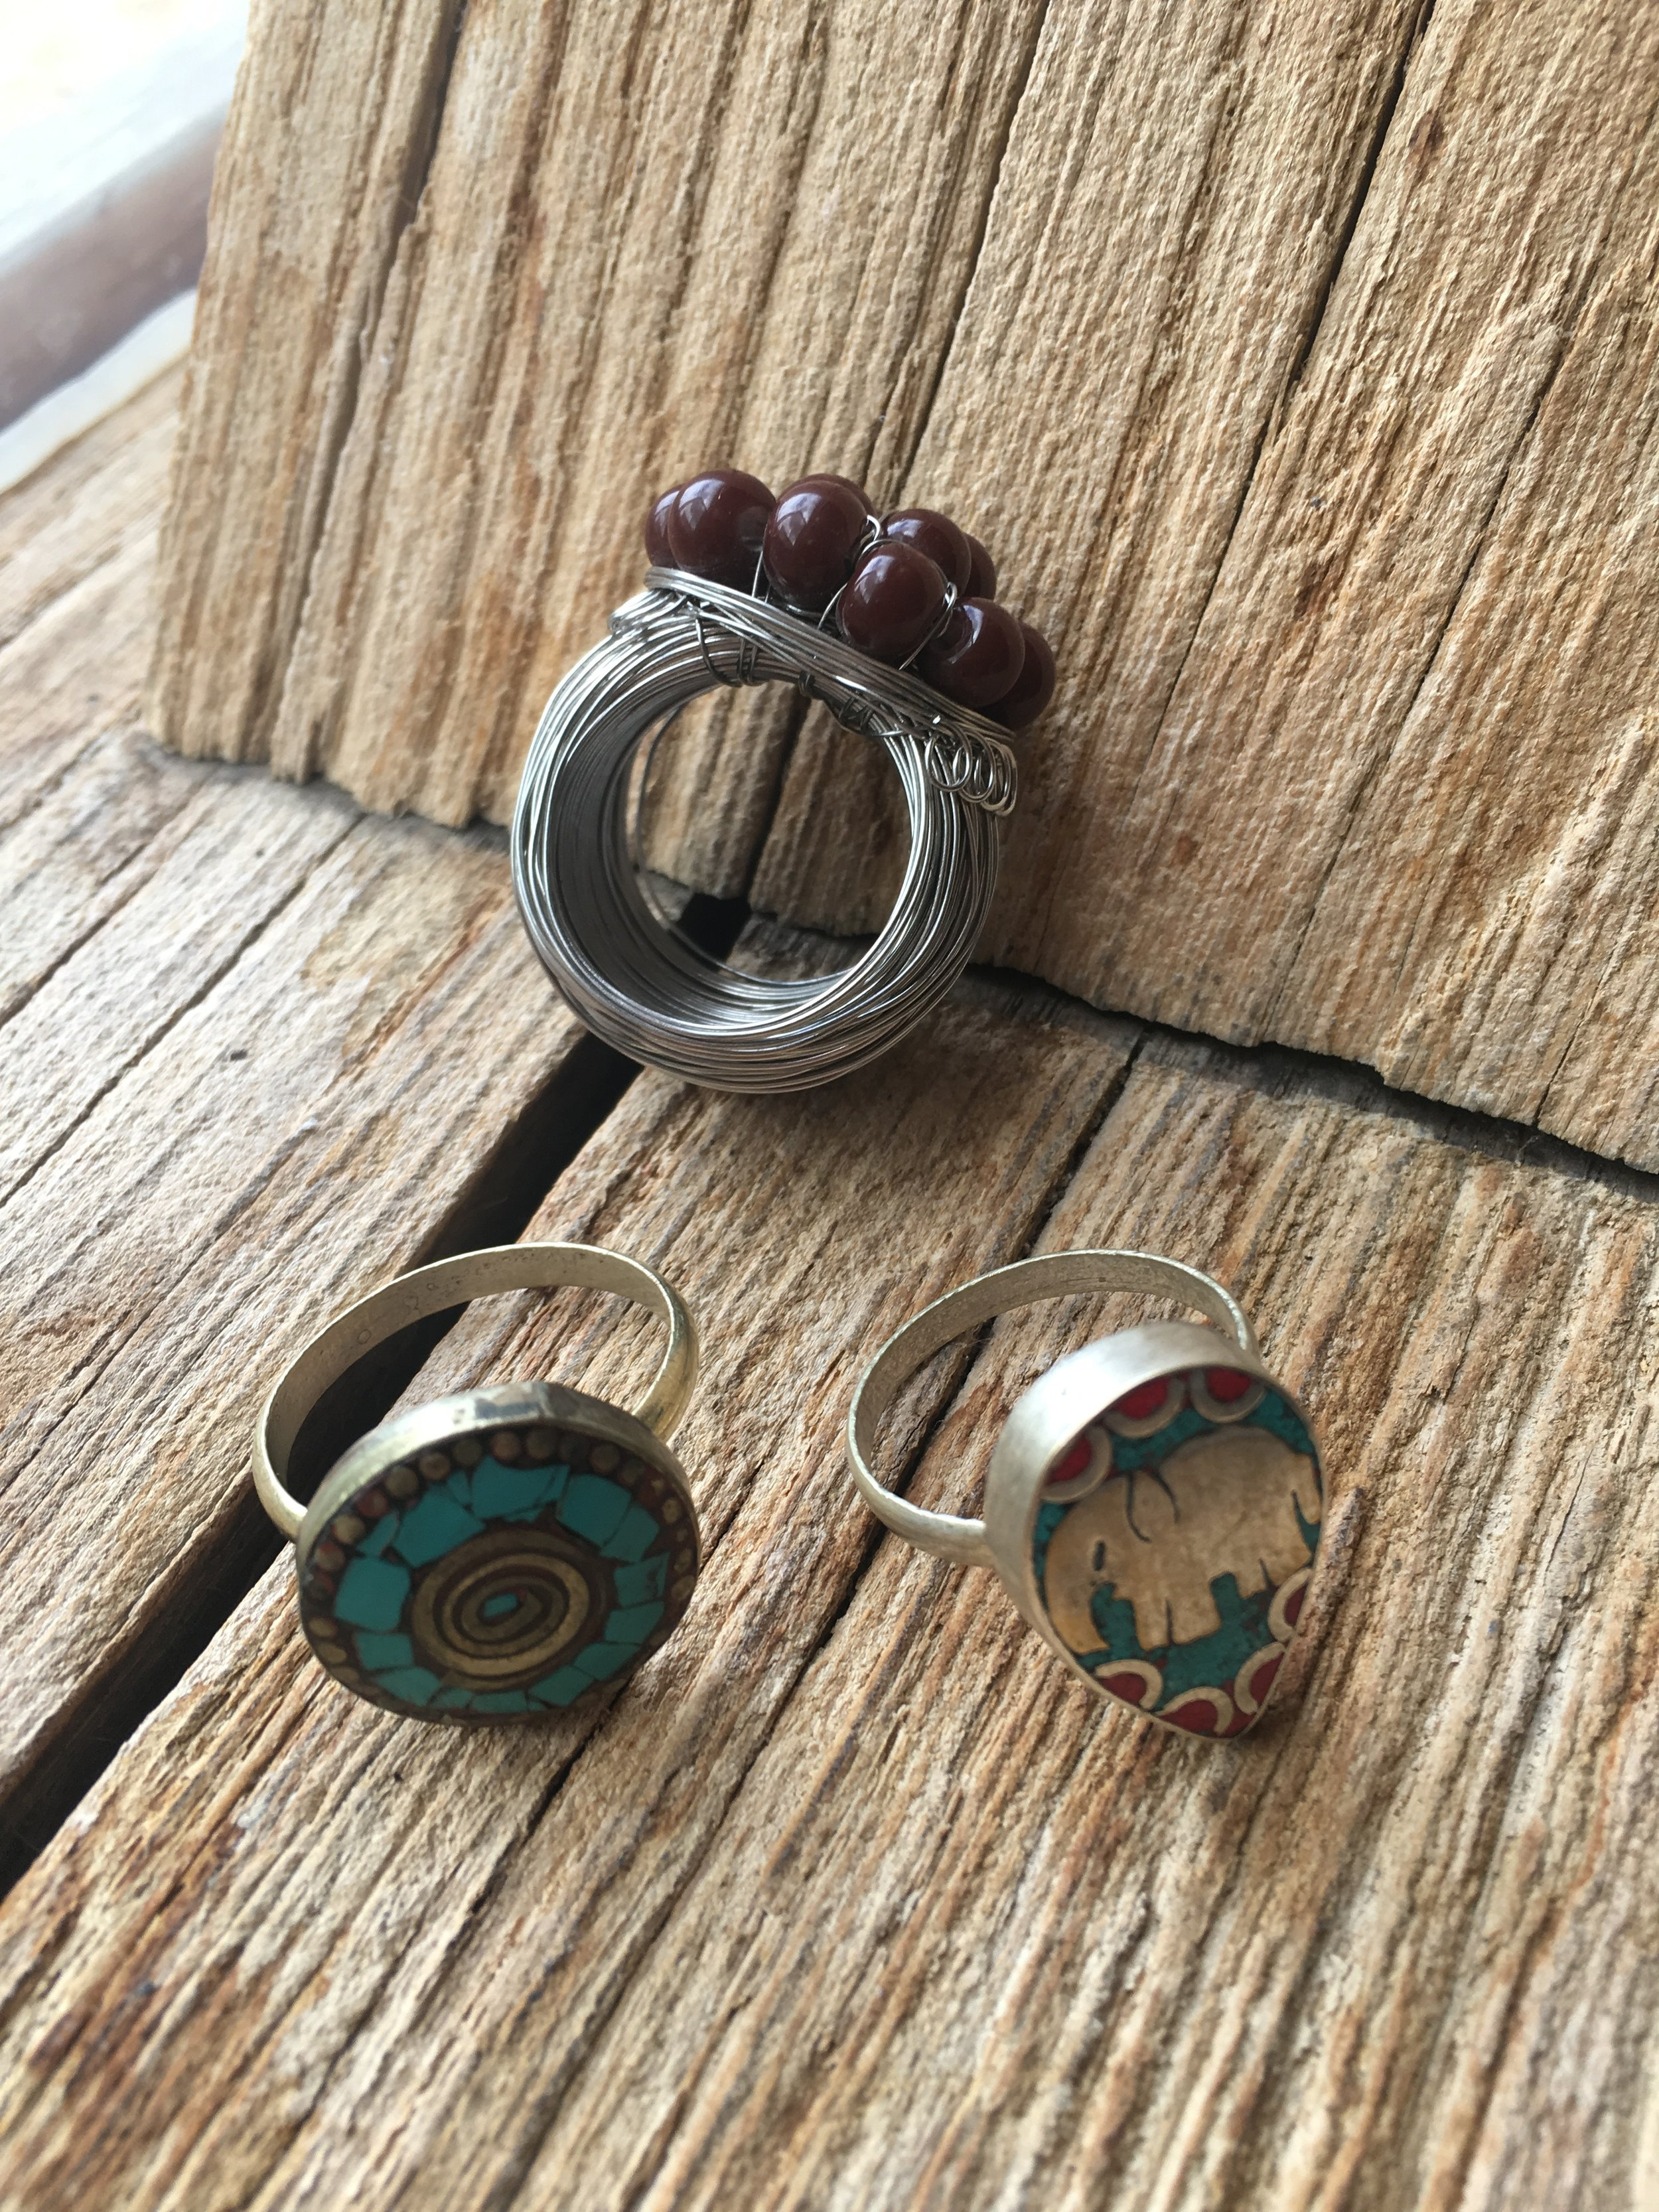 Kaboodle - For something a little different check out the collection of jewellery, clothing and soft furnishings from India and Nepal. Rings here are from £7.50 - £10.